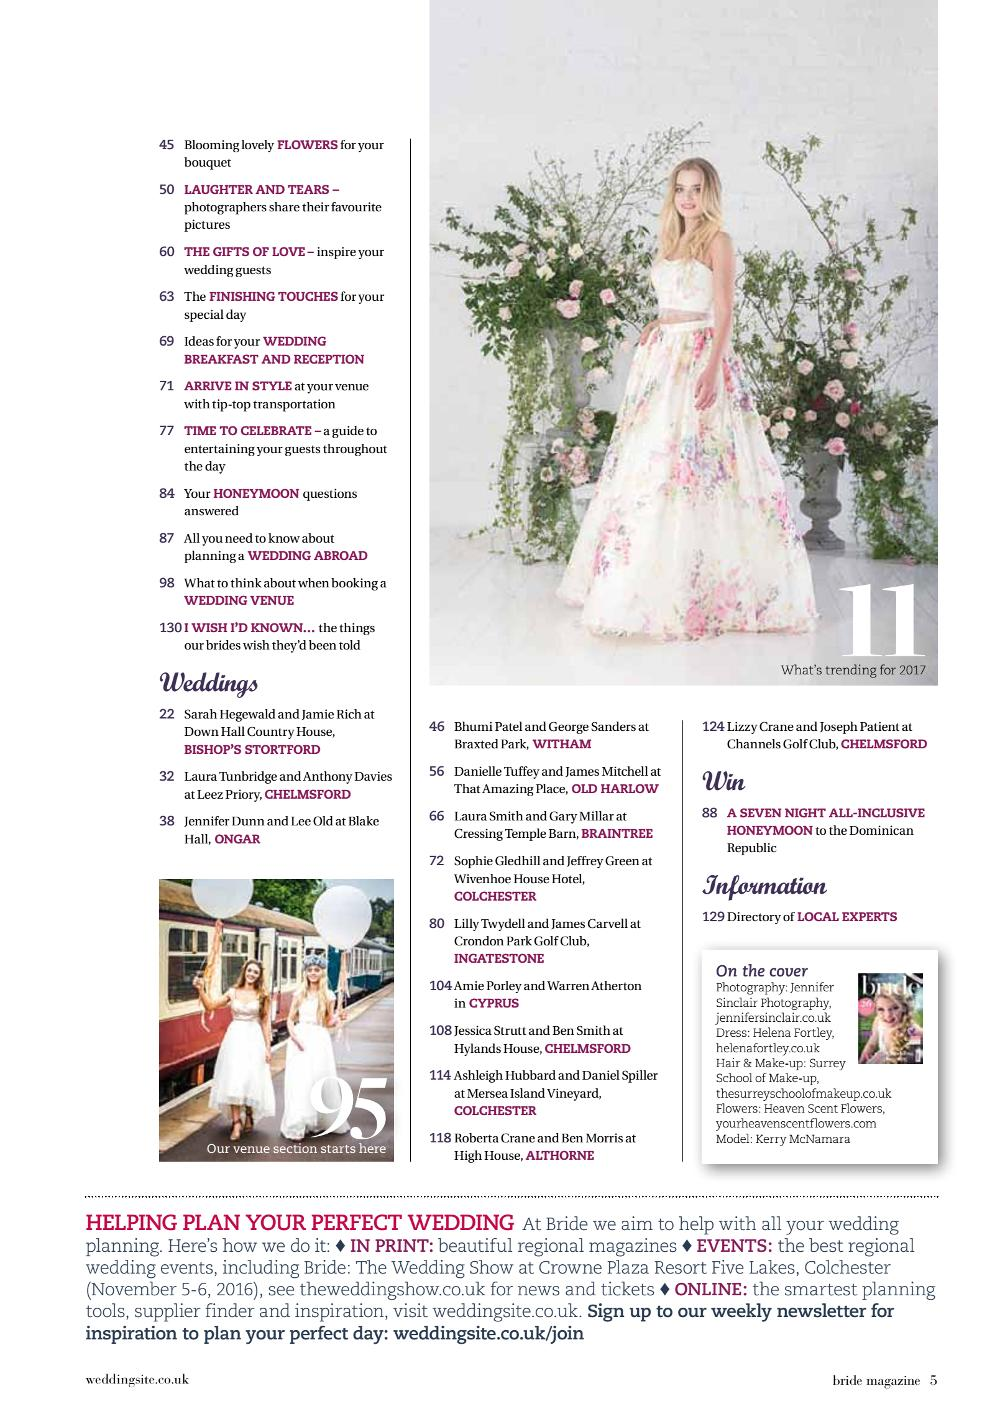 essex-bride-magazine-2016-2017-is-available-to-buy-3